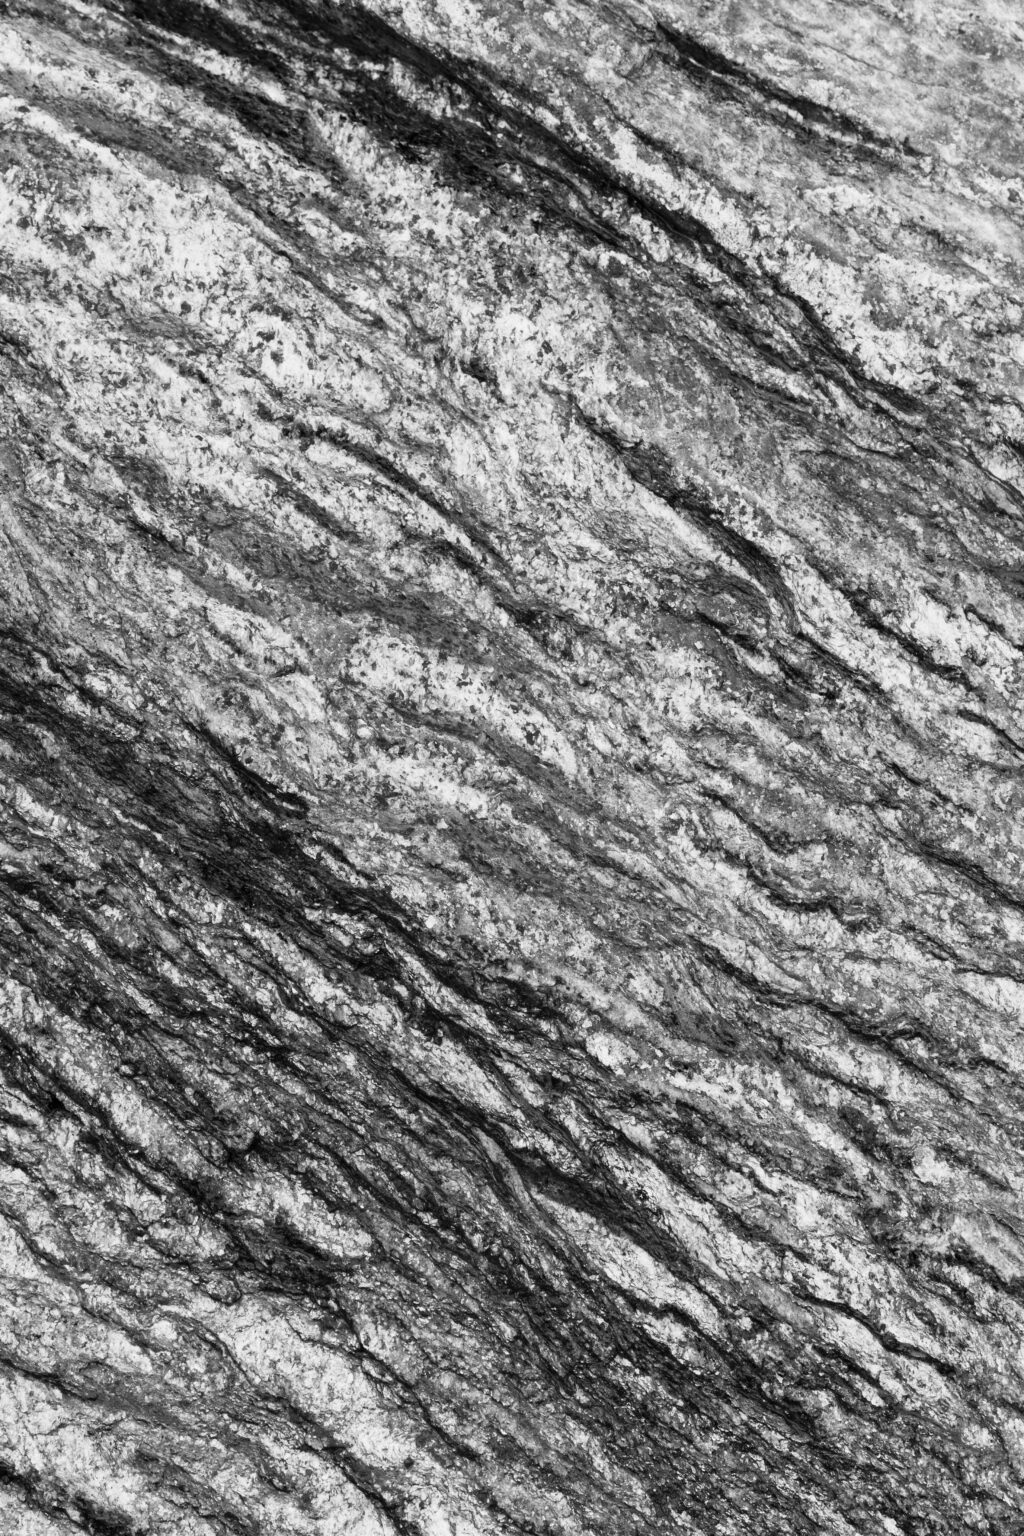 Gritty Rock Texture